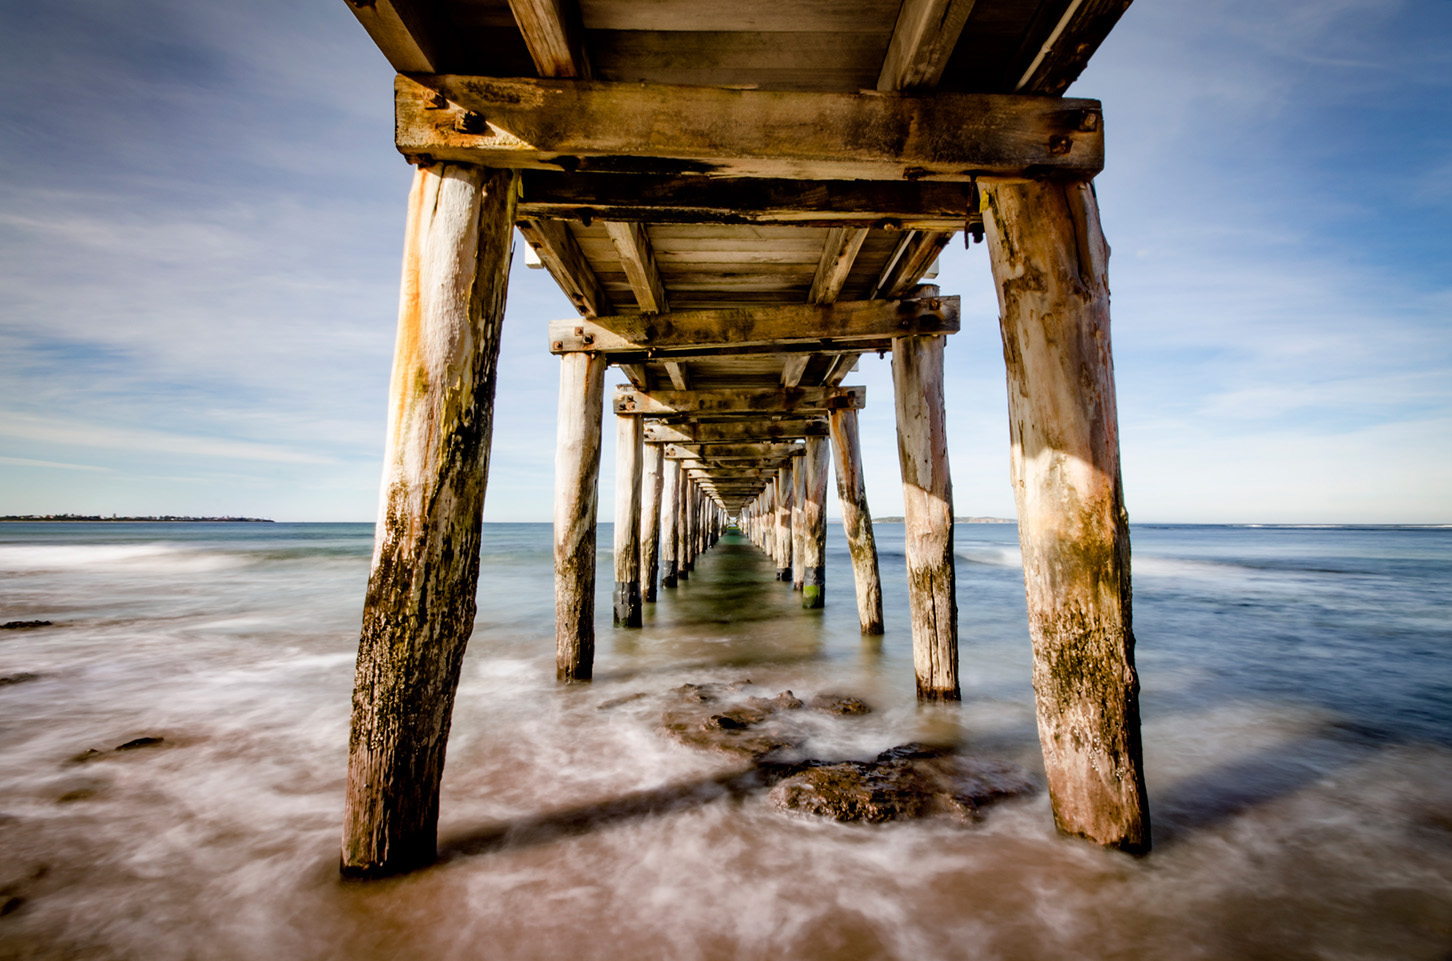 Underneath the Jetty 2